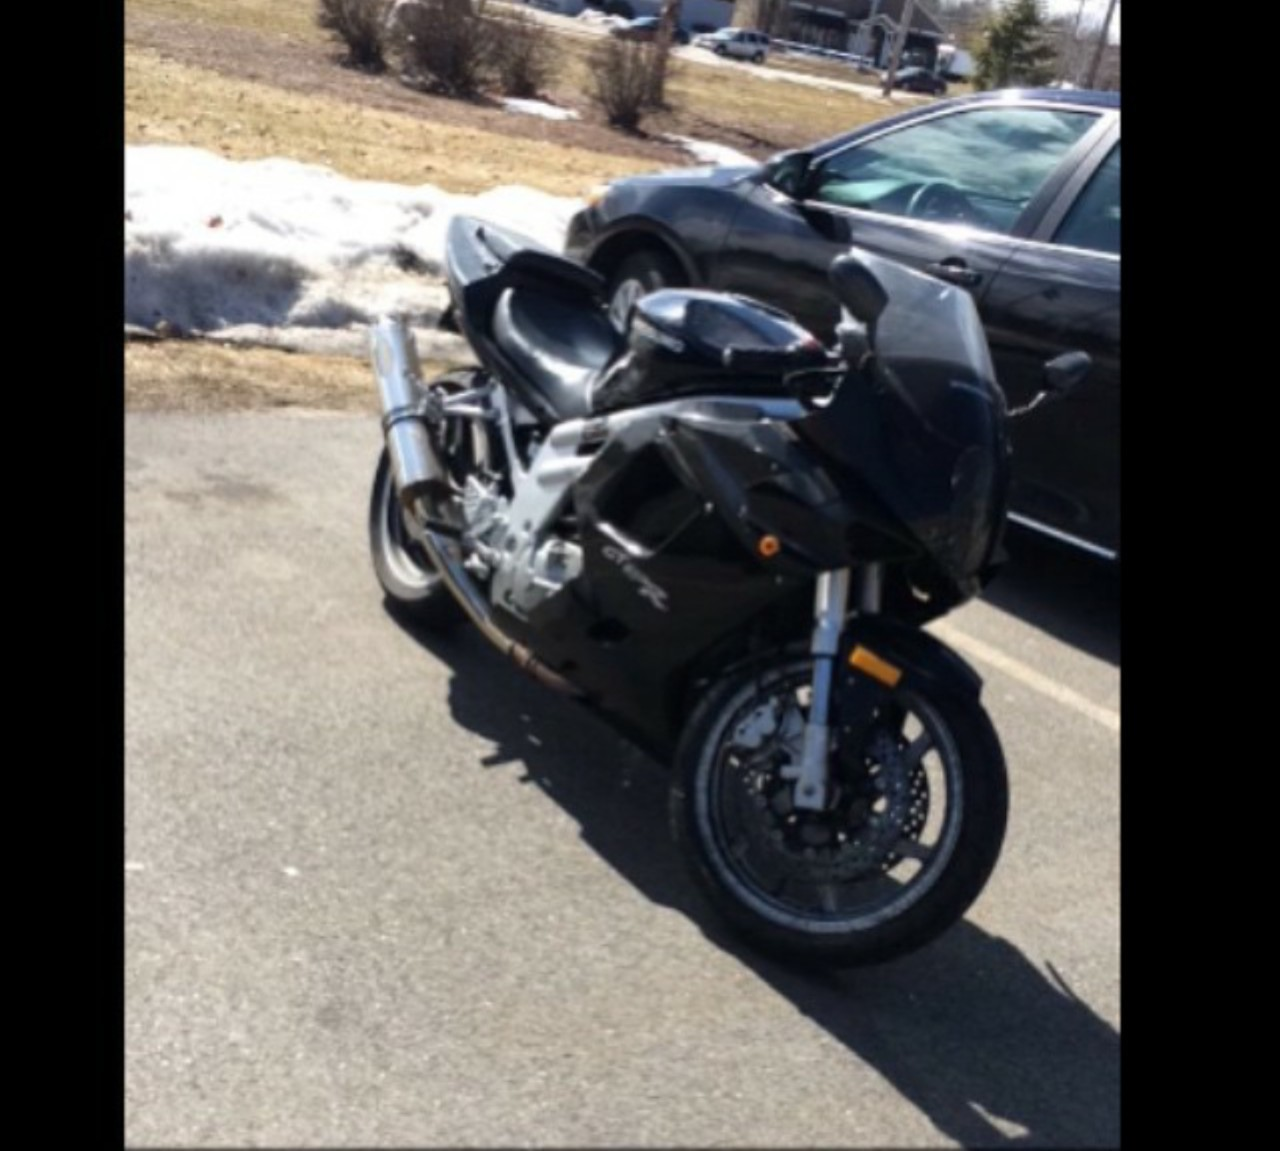 2006 Hyosung Gt650 R COMET, motorcycle listing